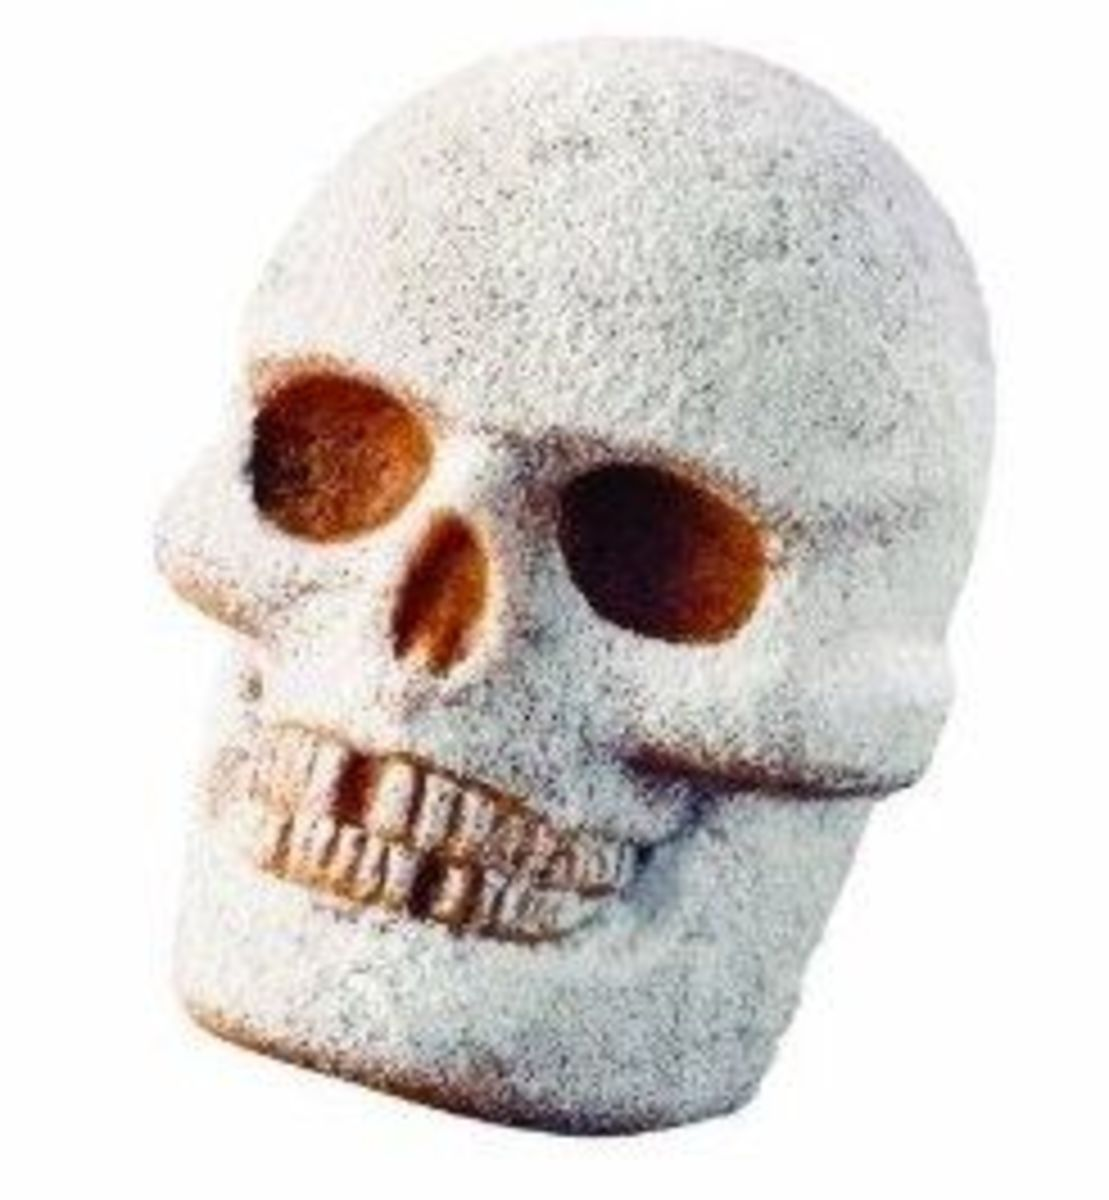 Powdered Face Skull Cake